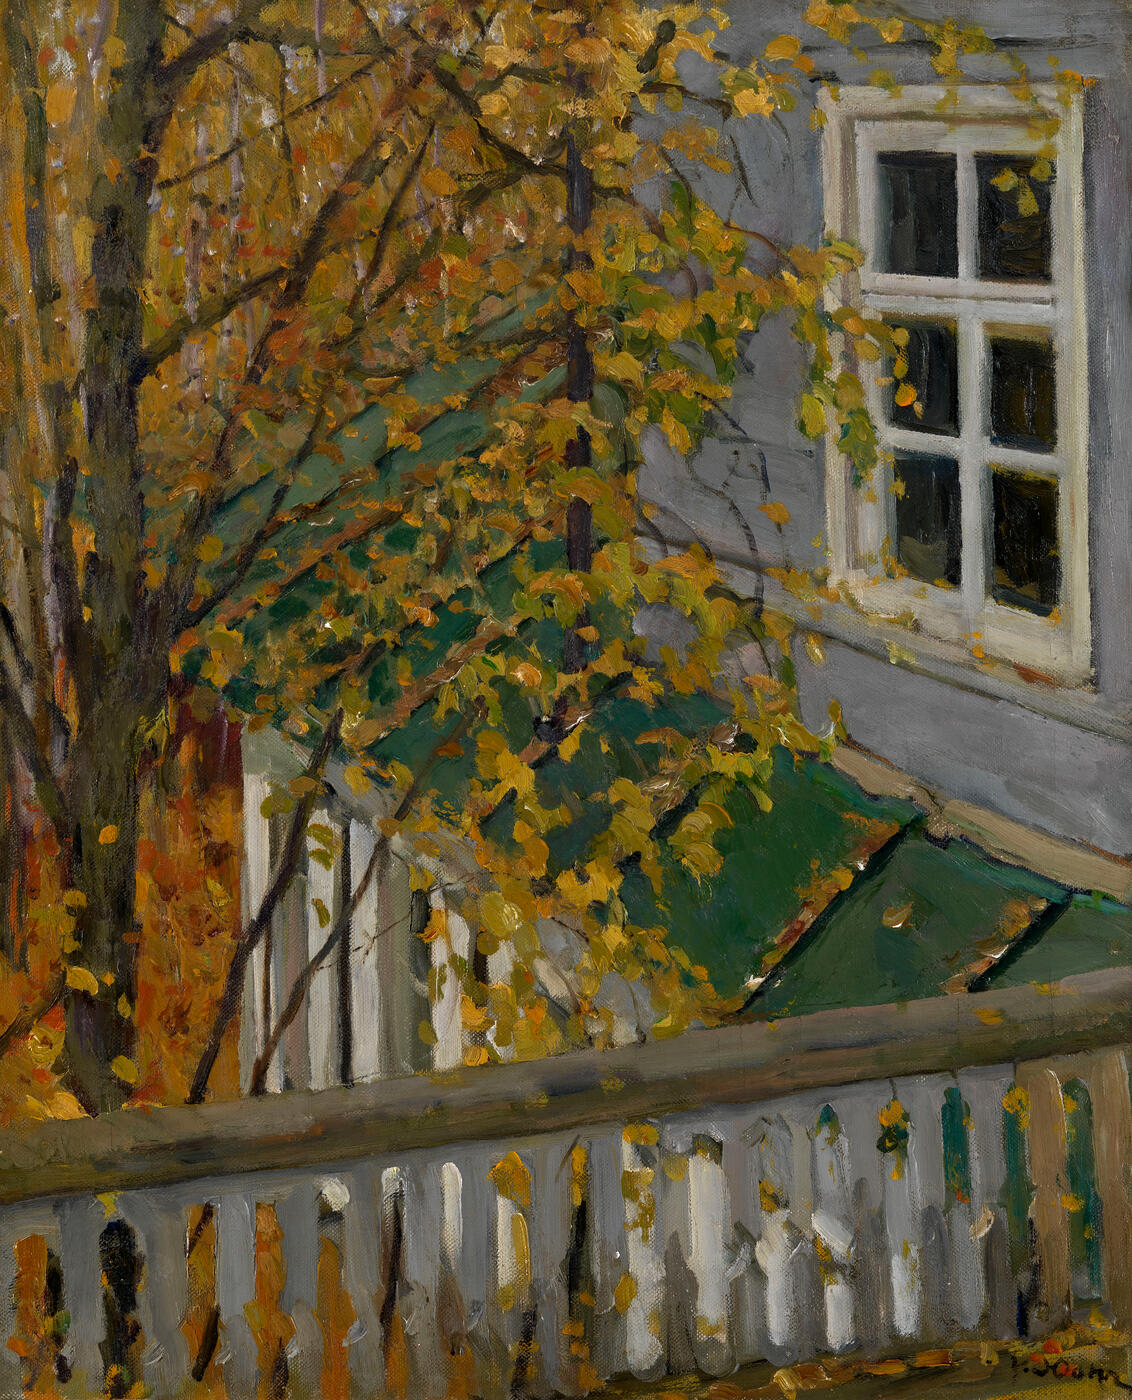 View from a Balcony in Autumn